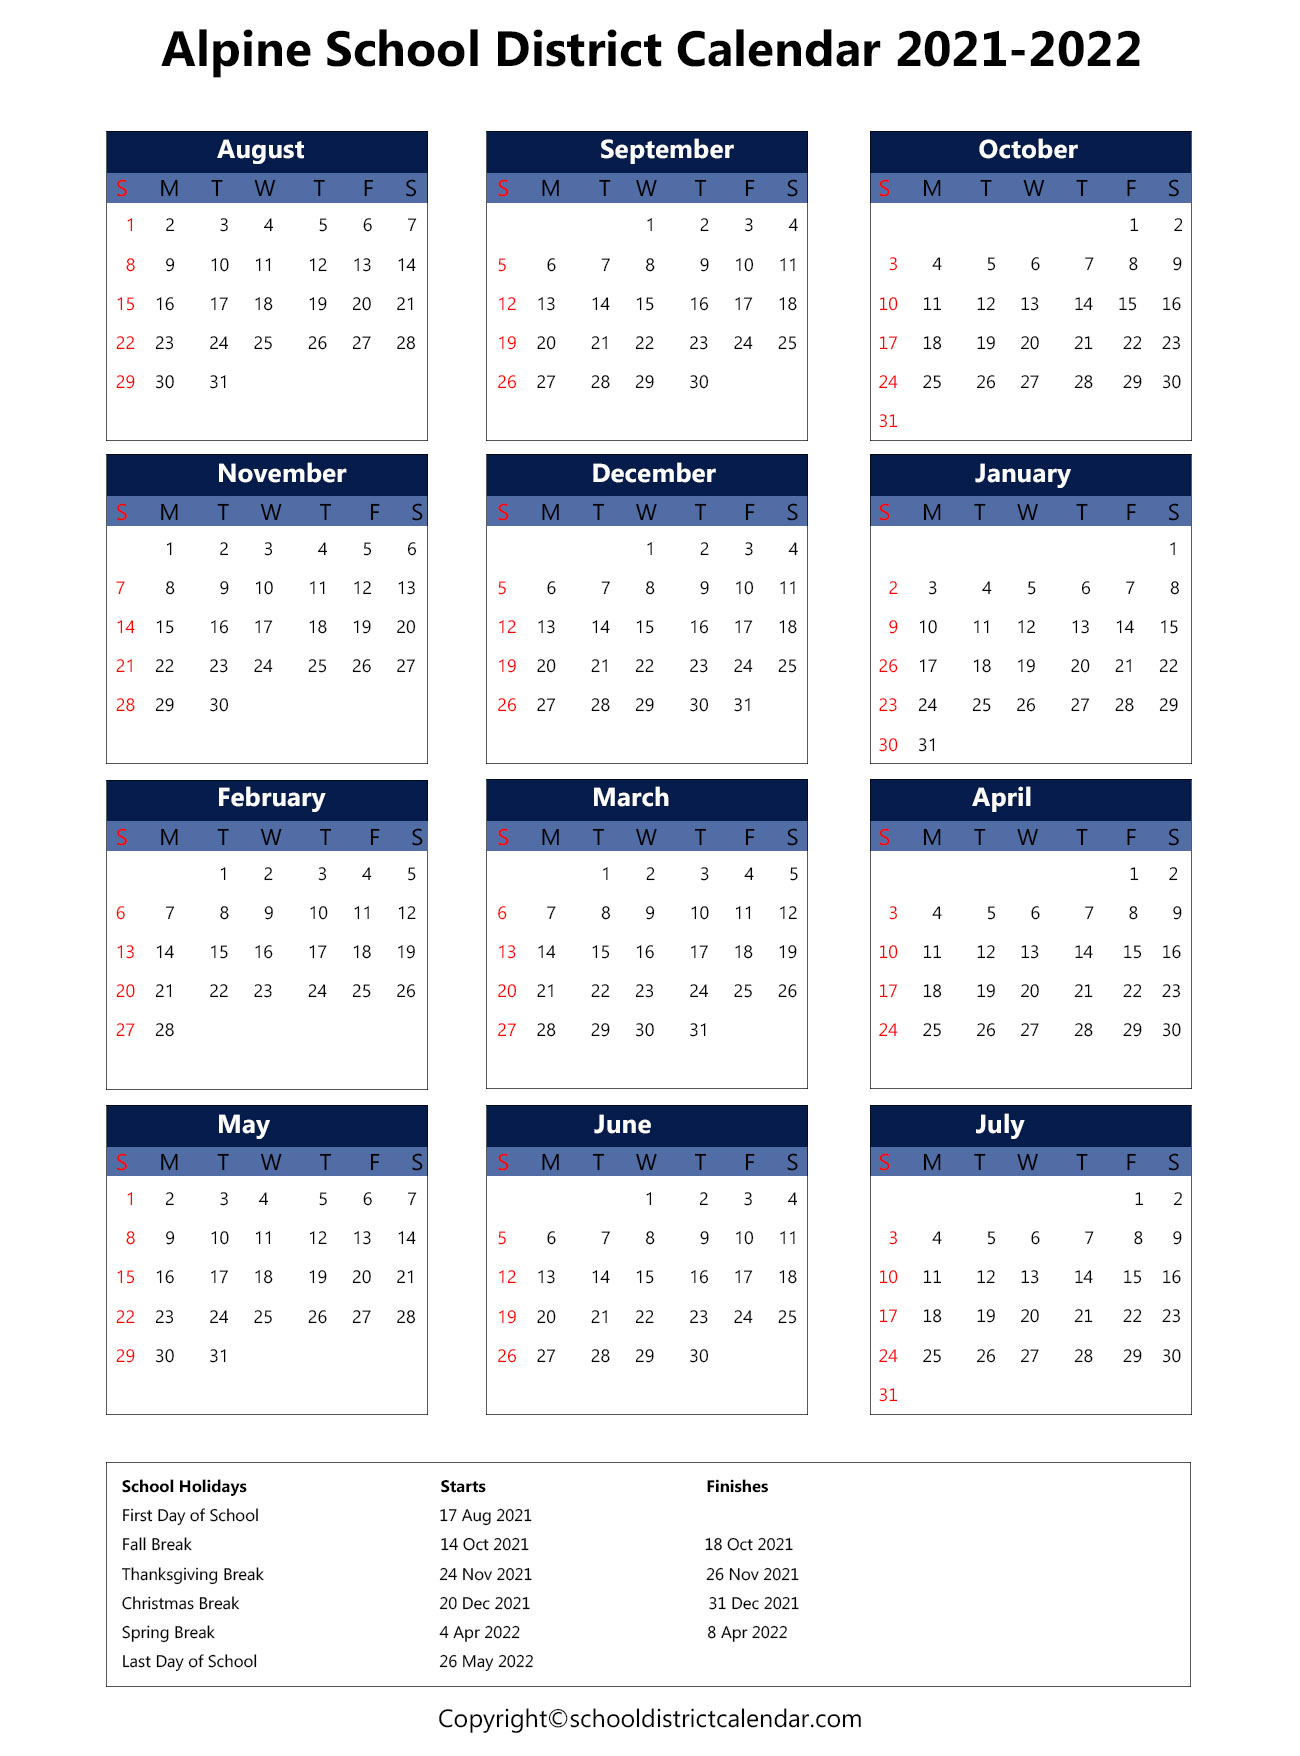 Alpine School District Calendar 2021